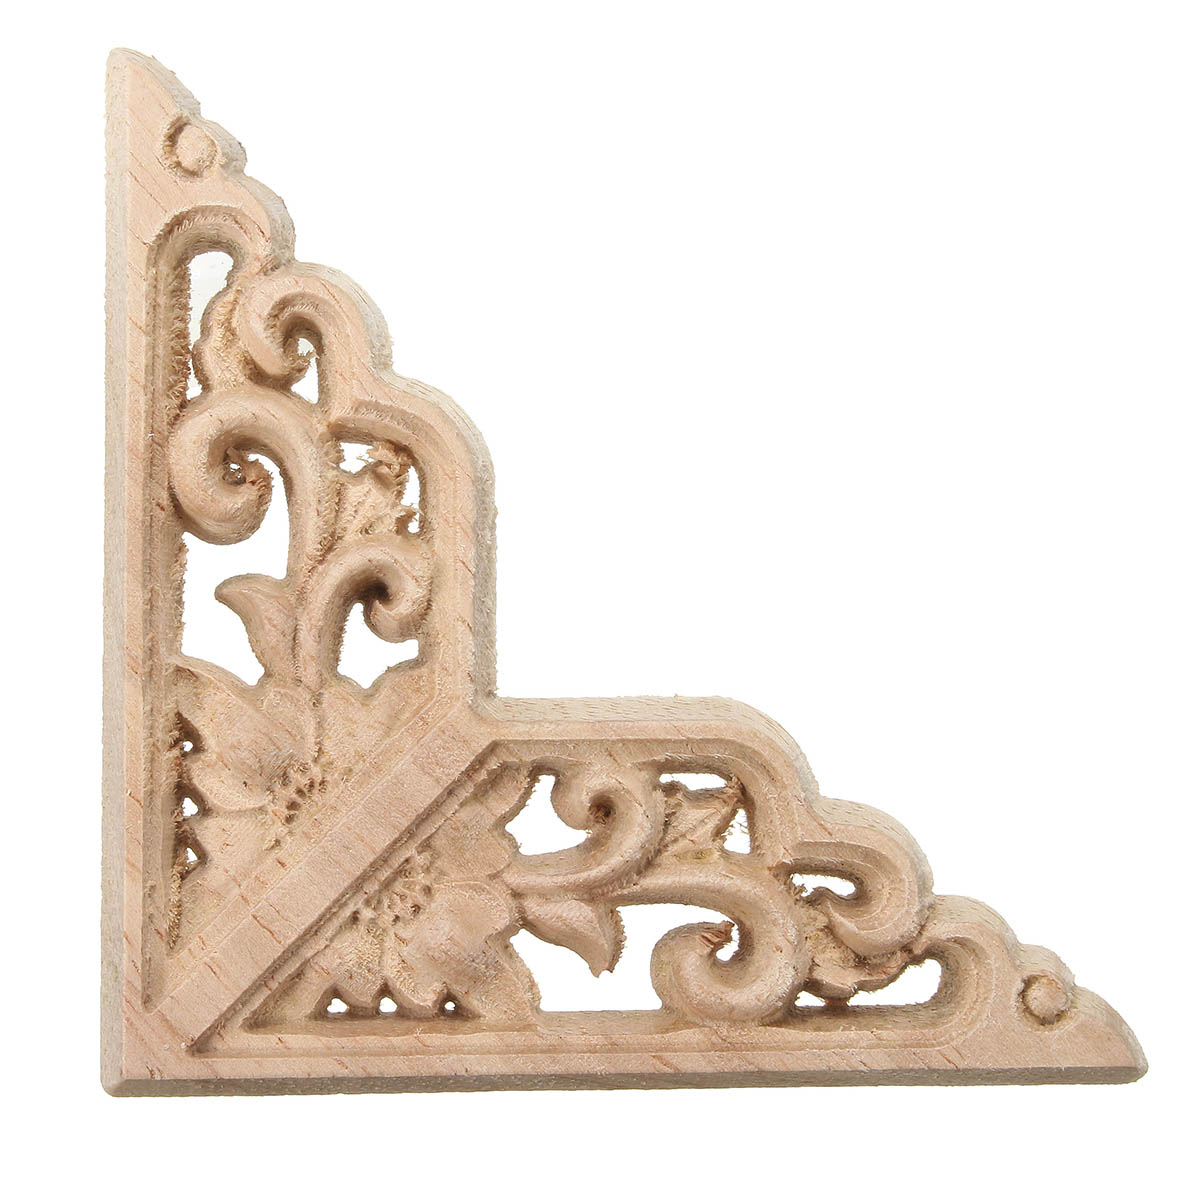 Wood Carving Applique Unpainted Onlay Door Corner Cabinet Furniture Wood Carving Decor 8x8cm